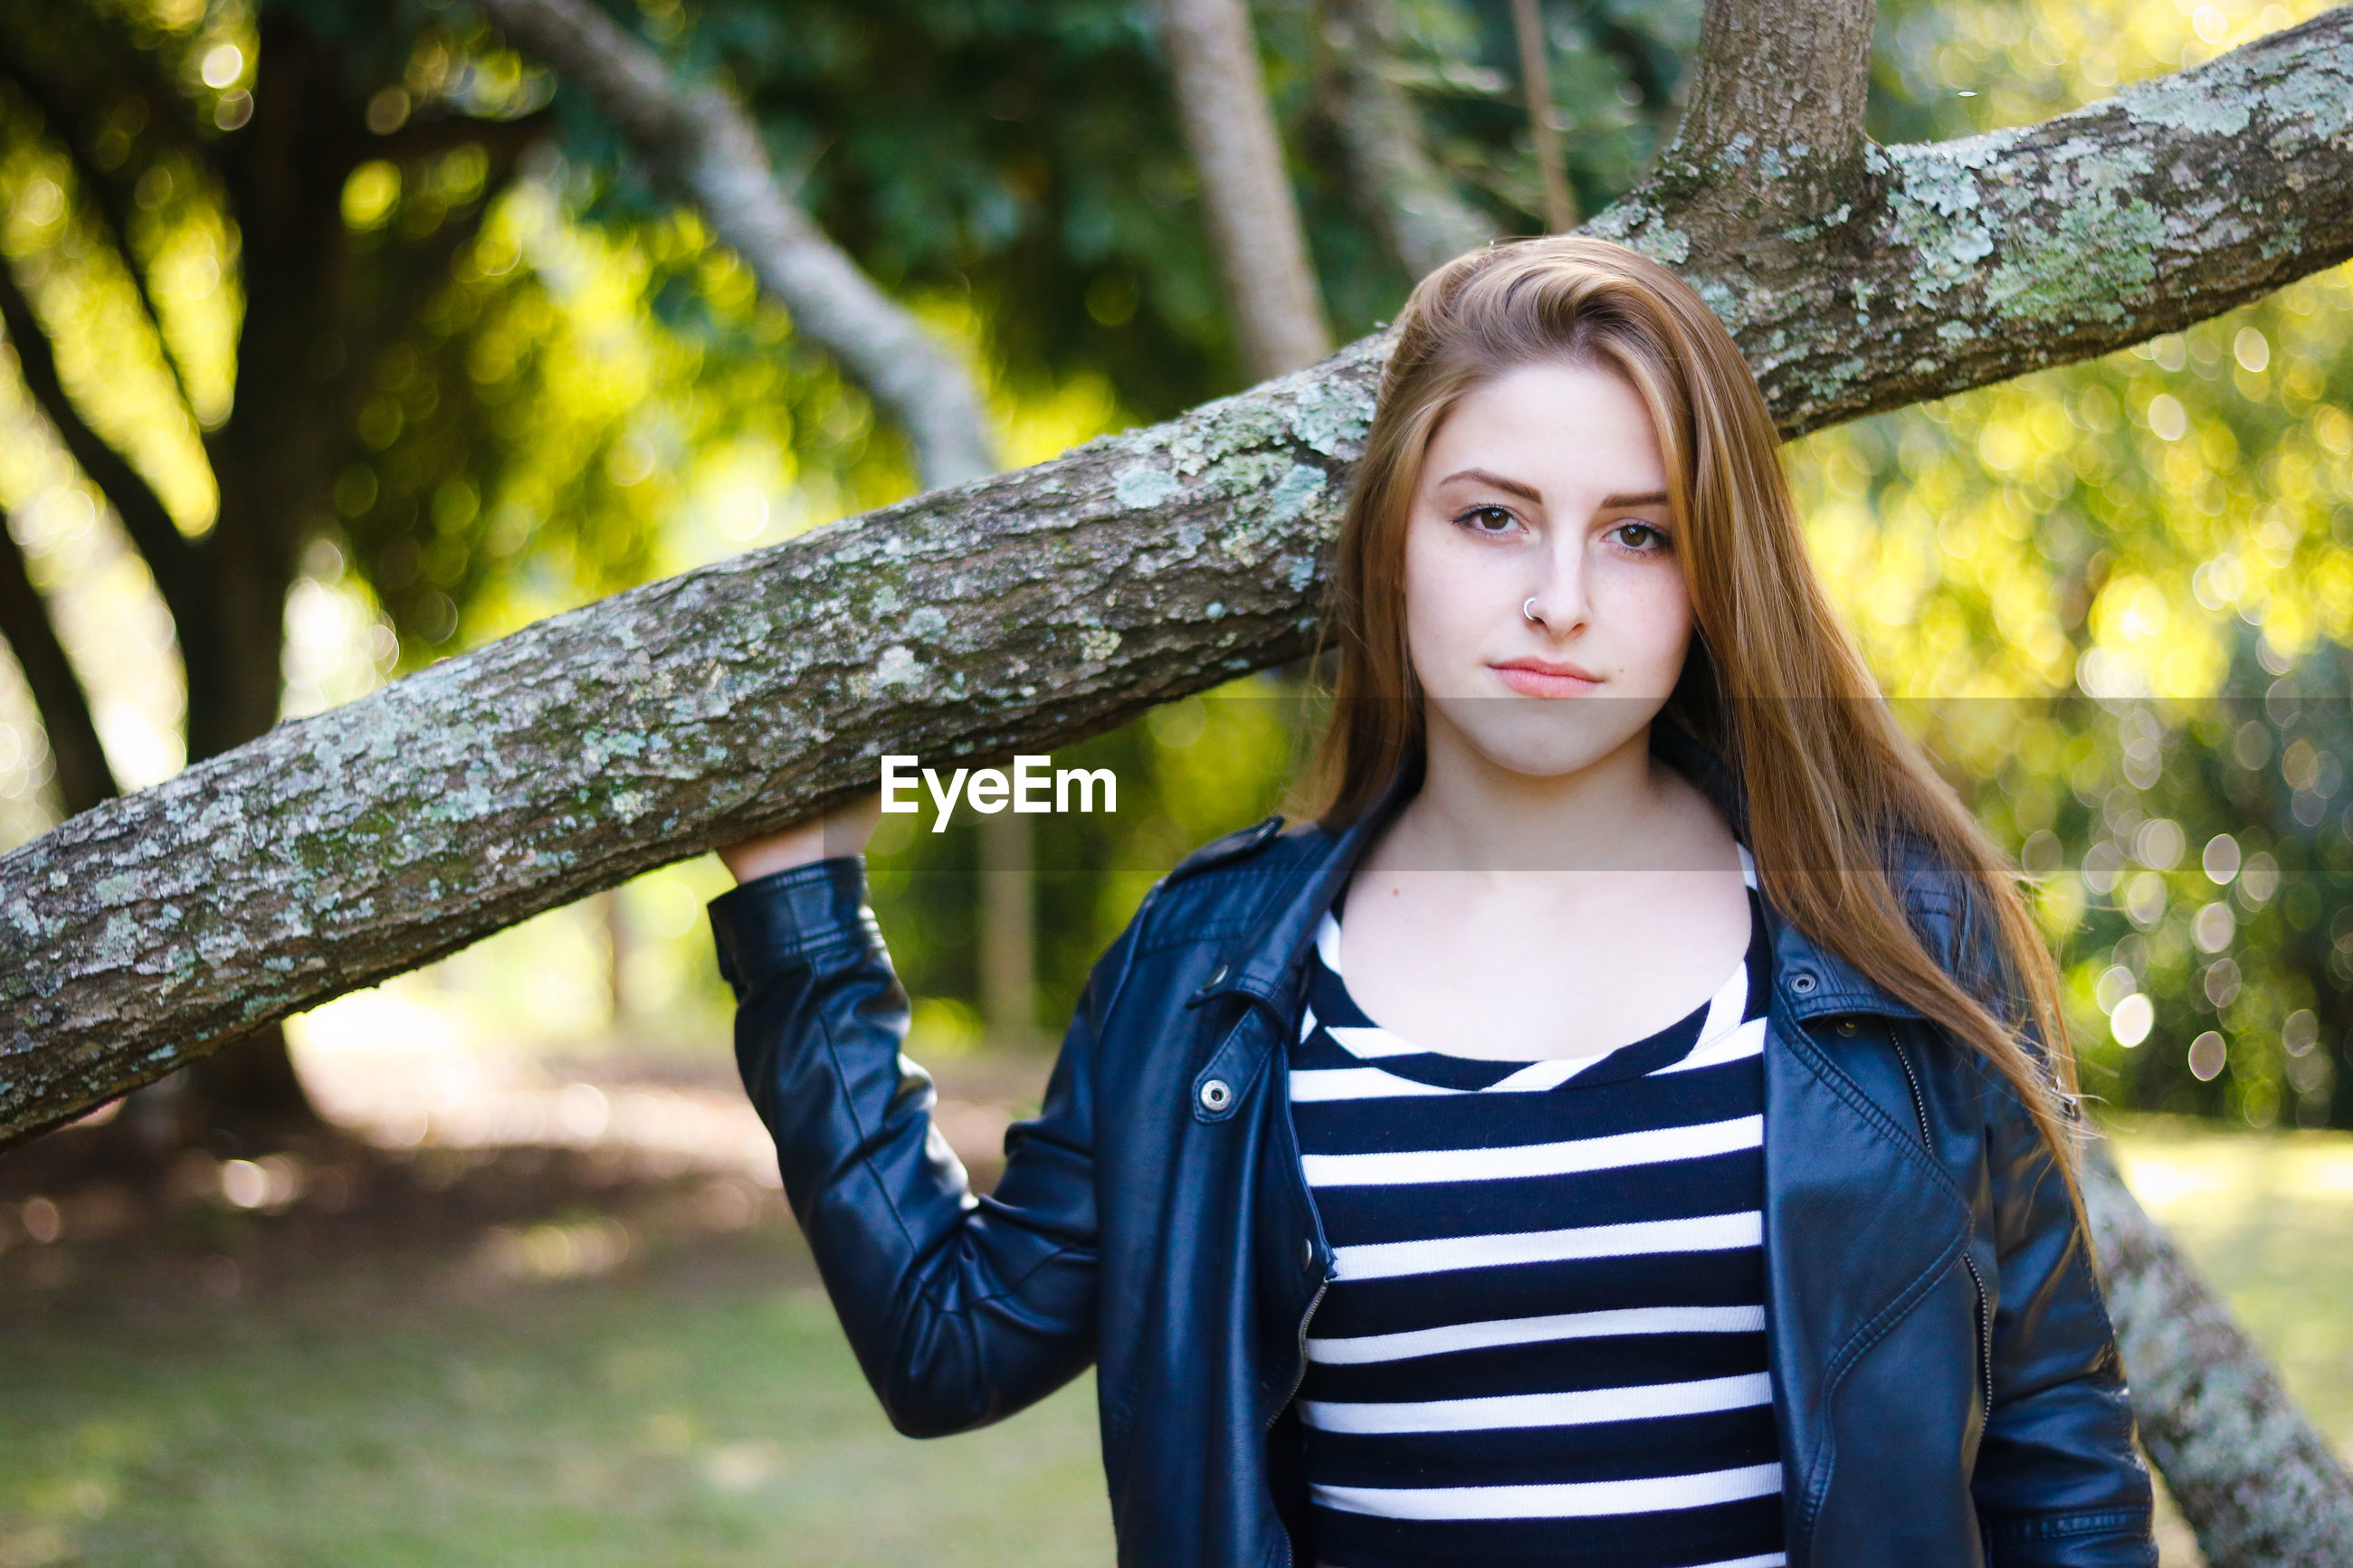 Portrait of woman standing against tree trunk at park